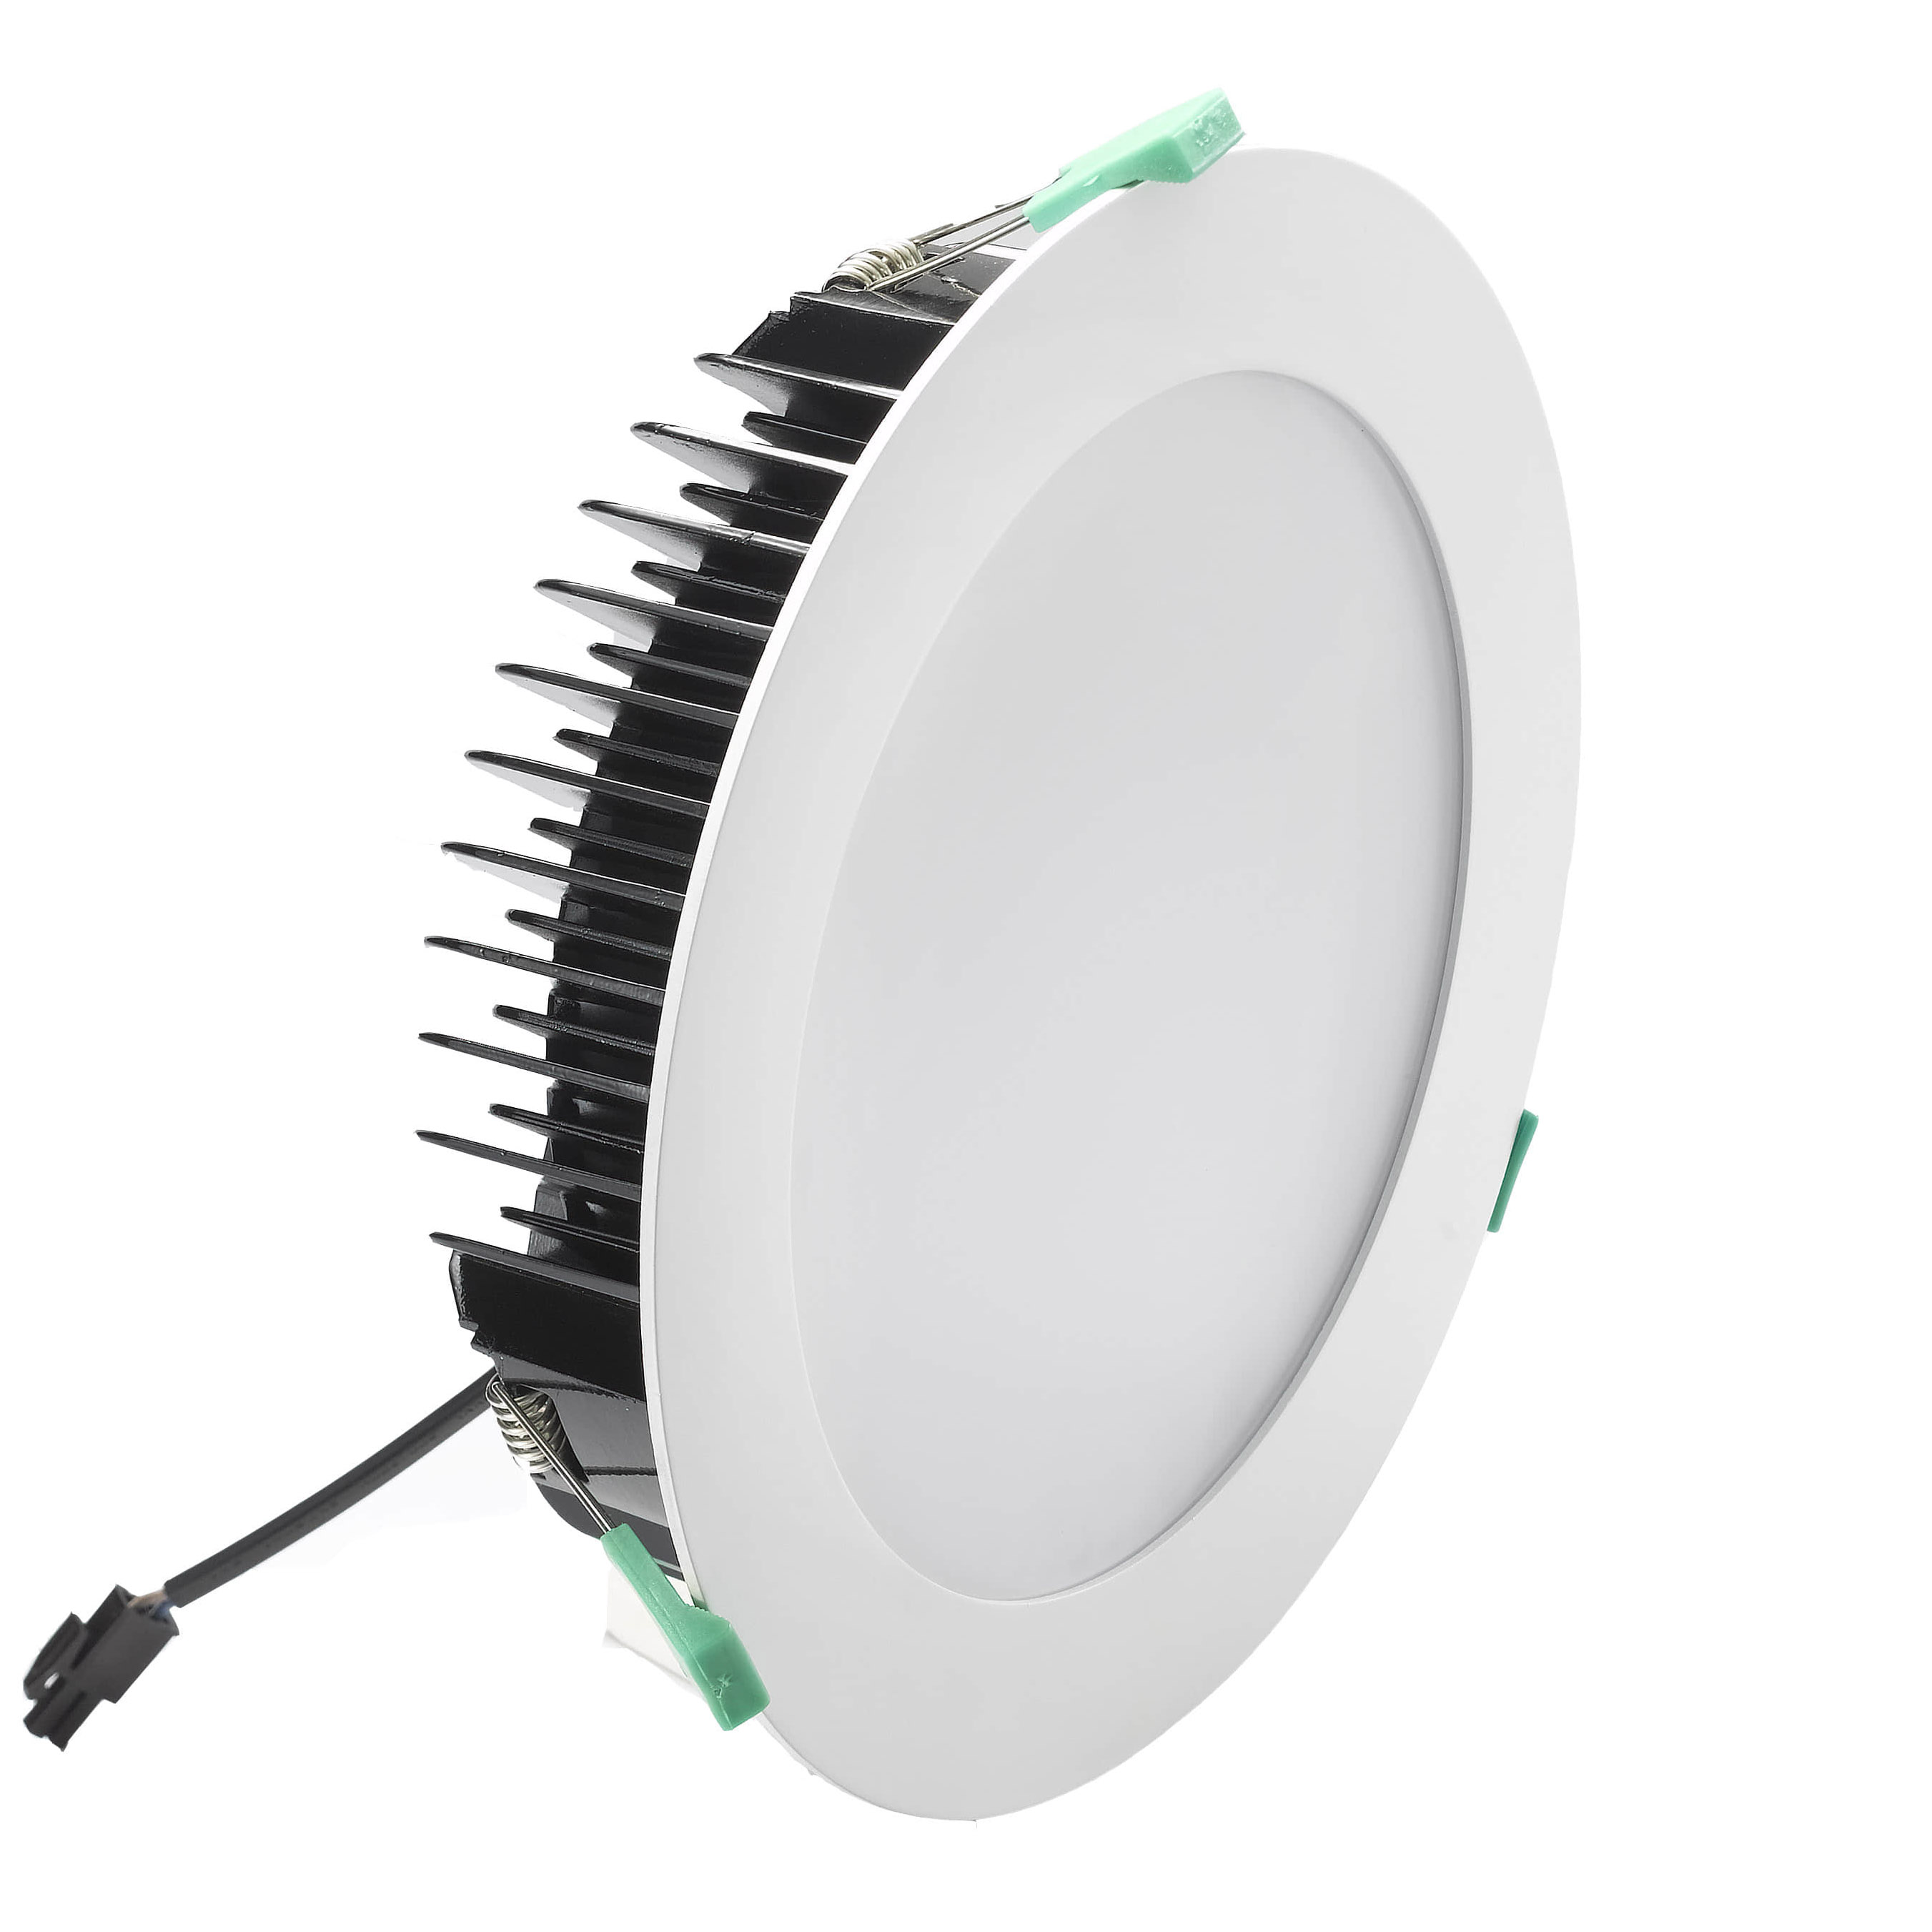 8 inch SMD Downlight DL57 20-35W